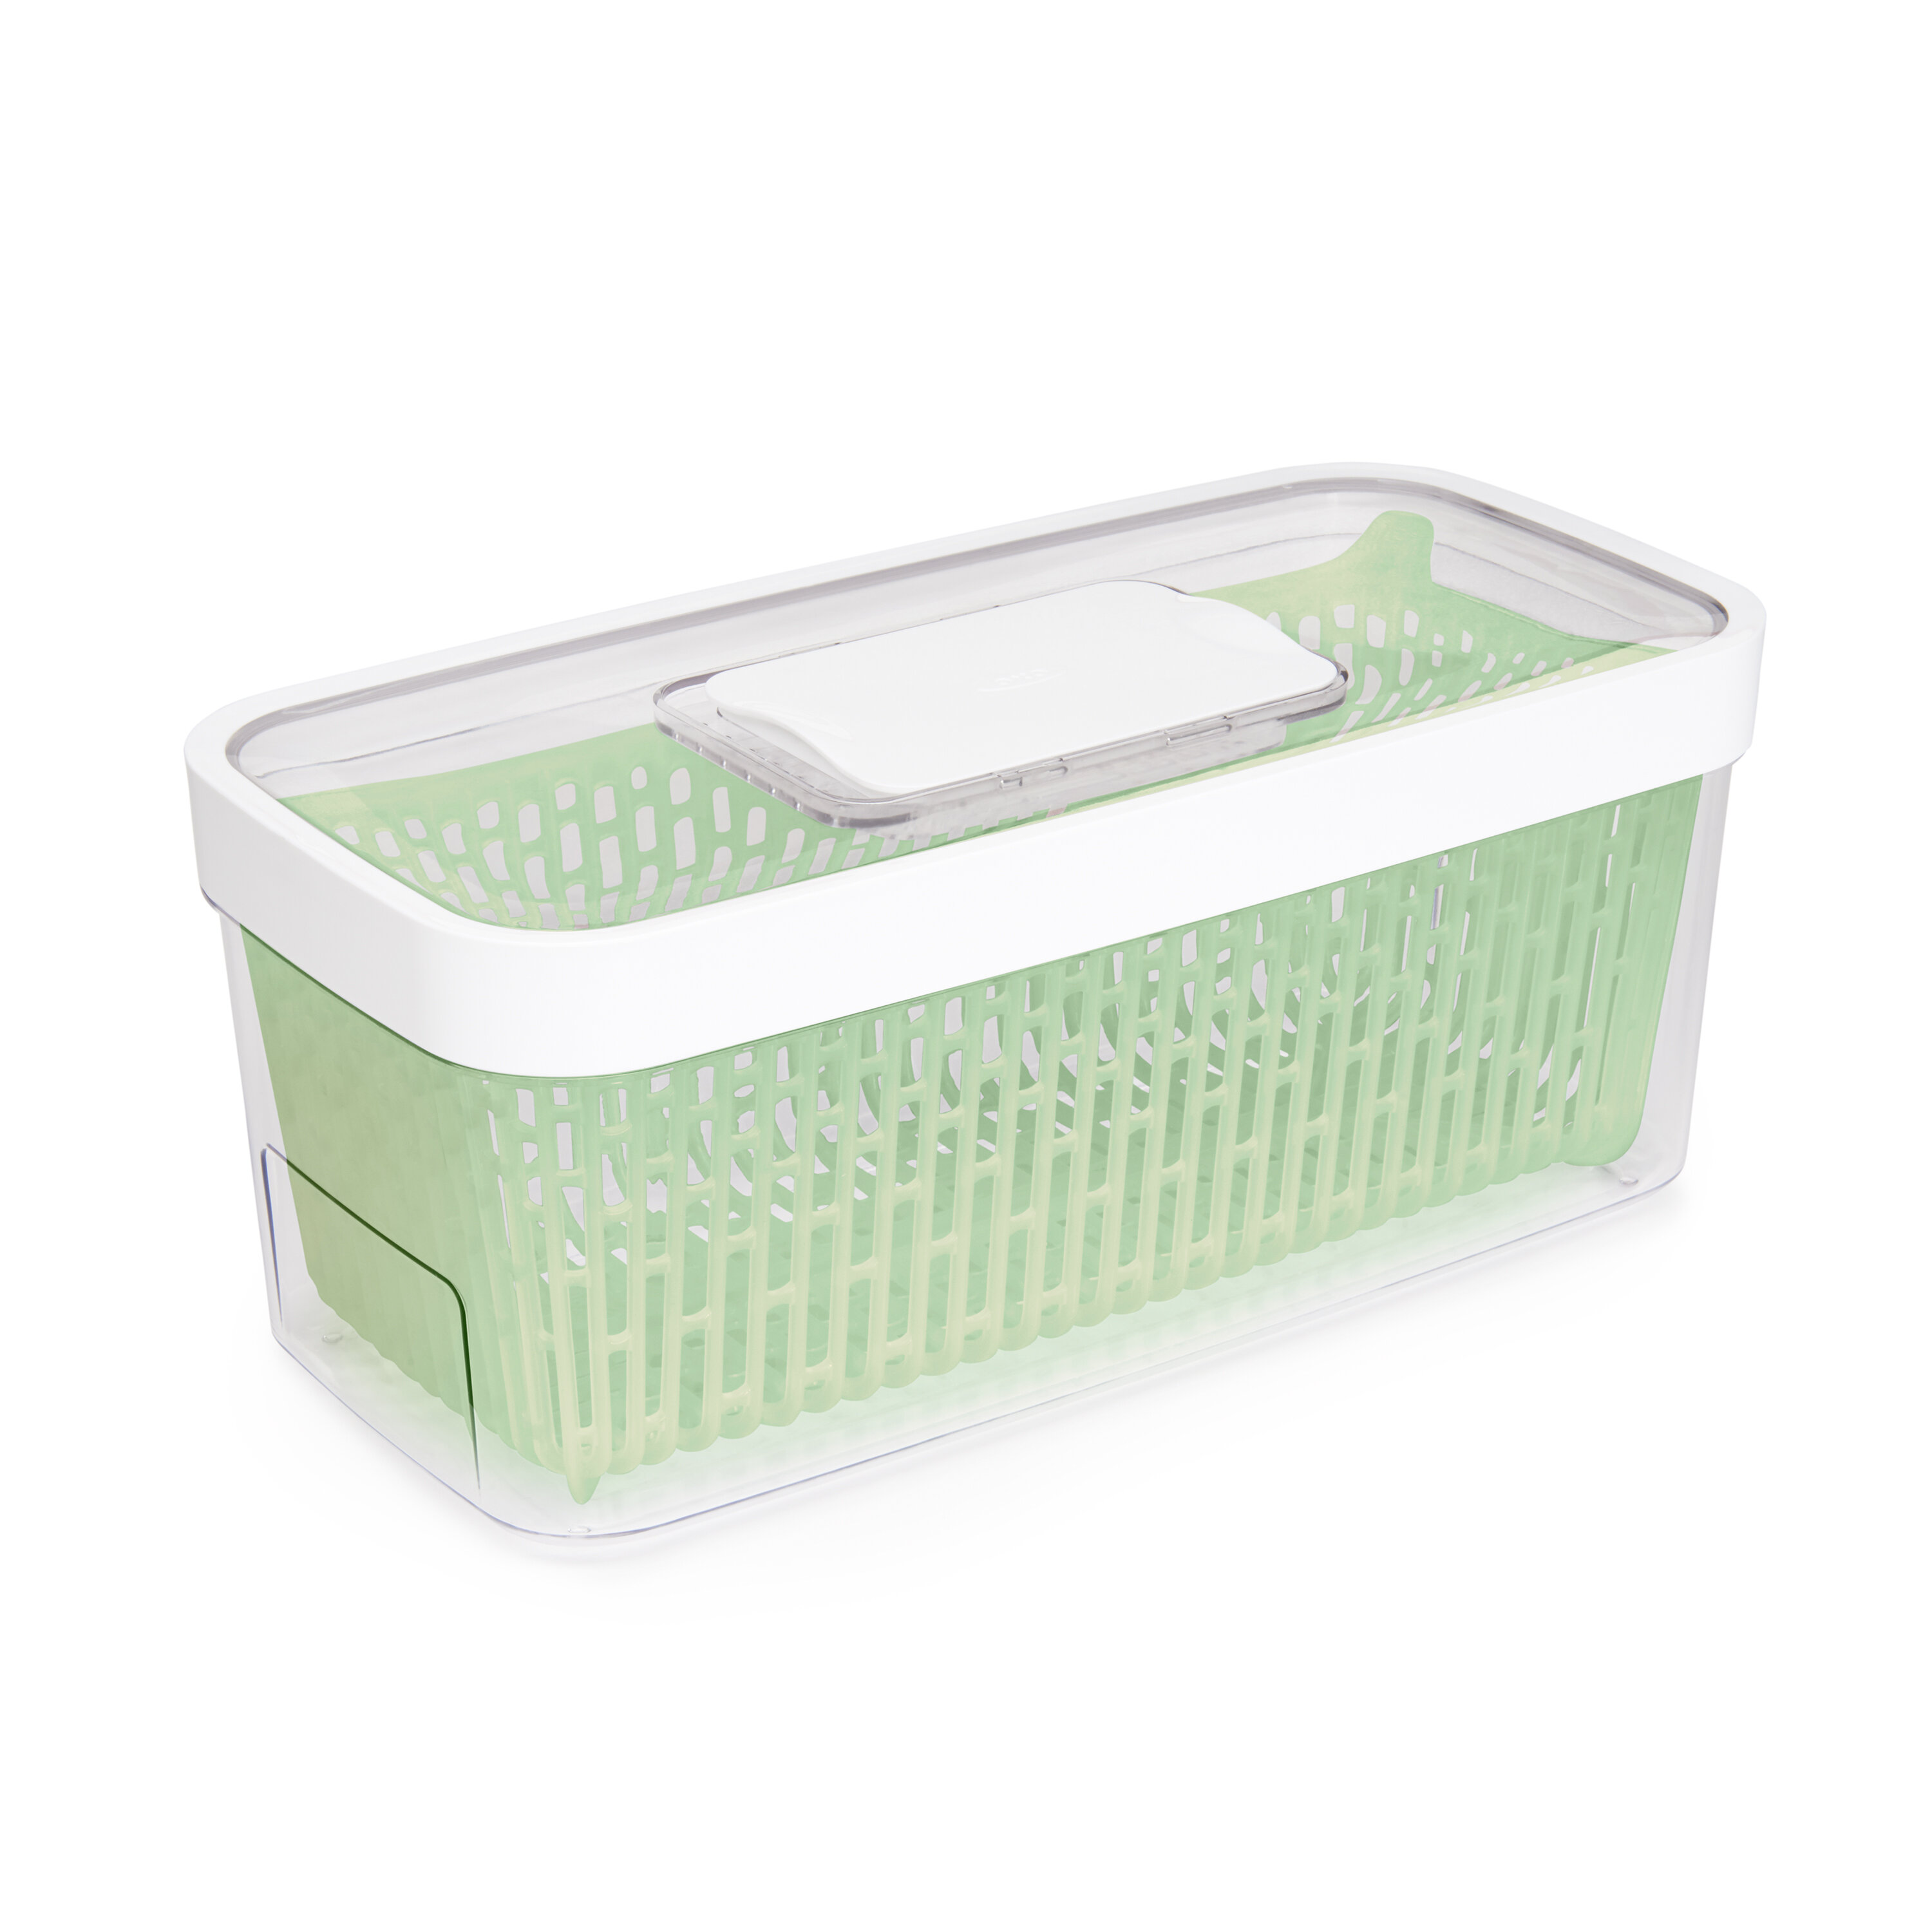 Oxo Good Grips Green Saver Produce Keeper 40 Oz Food Storage Container Reviews Wayfair